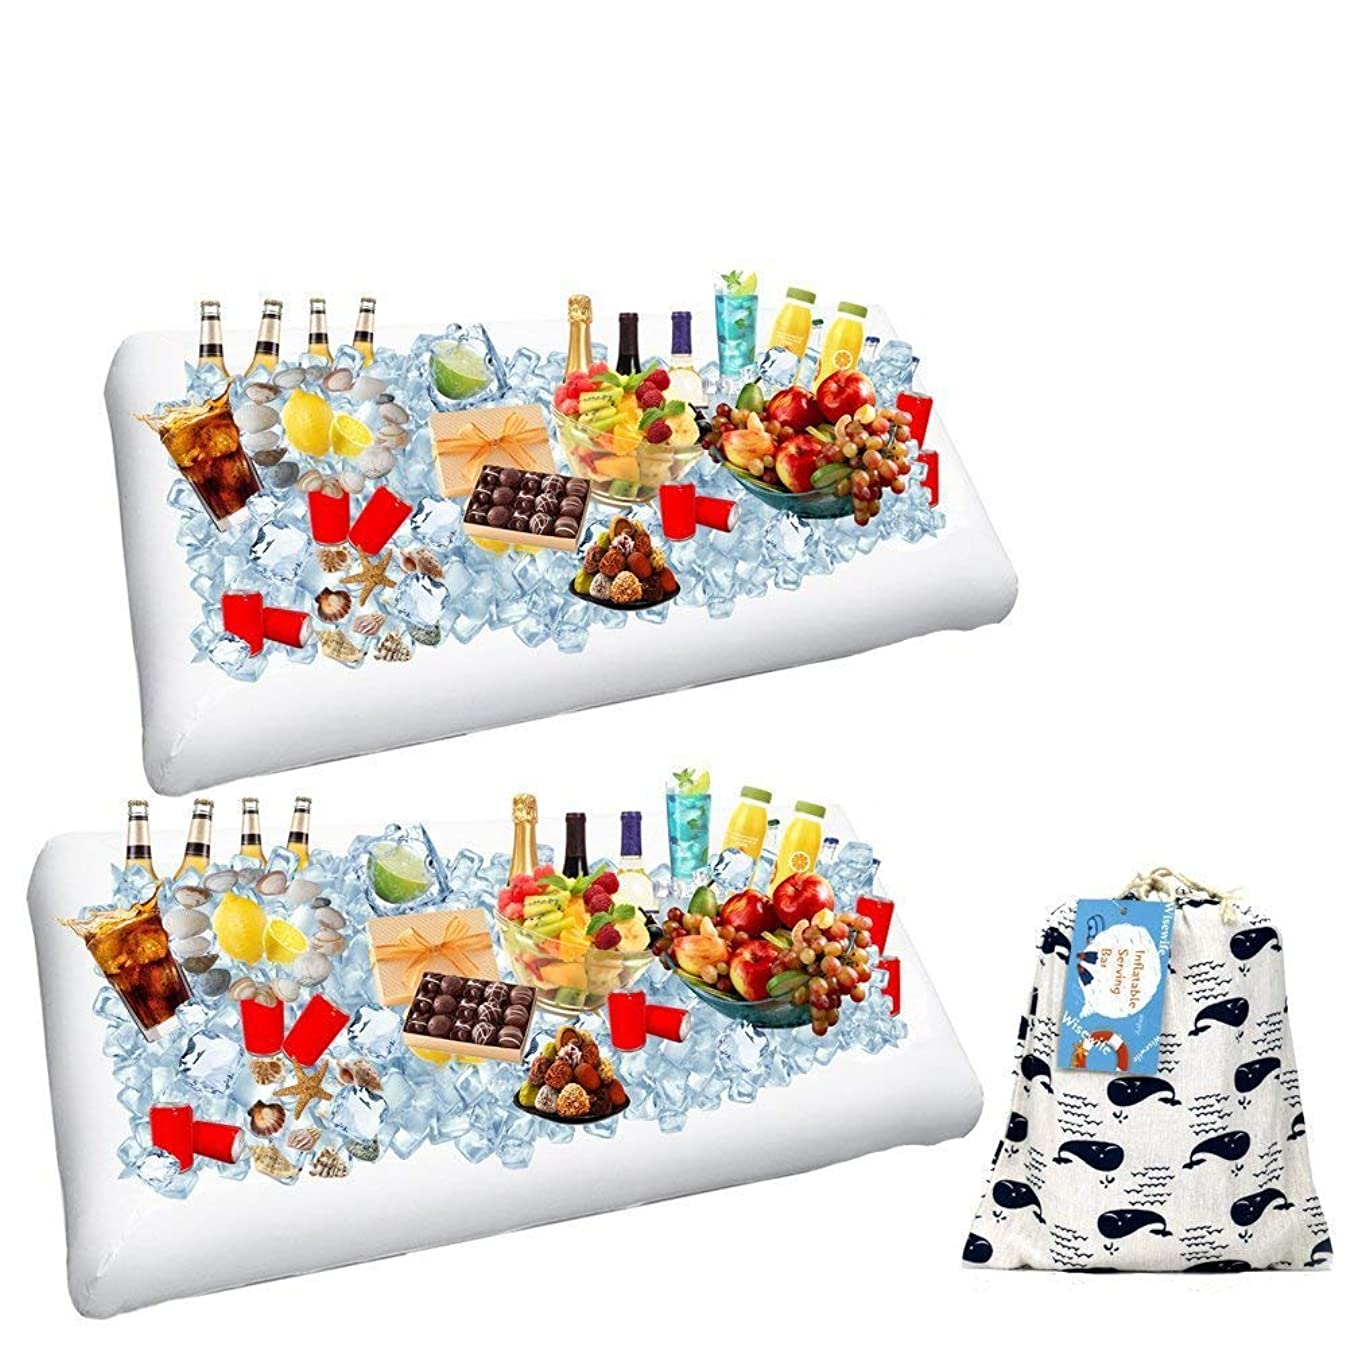 2 Pack Inflatable Salad Bar Buffet Ice Cooler Beverage Serving Bar Food Drink Holder for Party Picnic BBQ Luau with Drain Plug by Wisewife